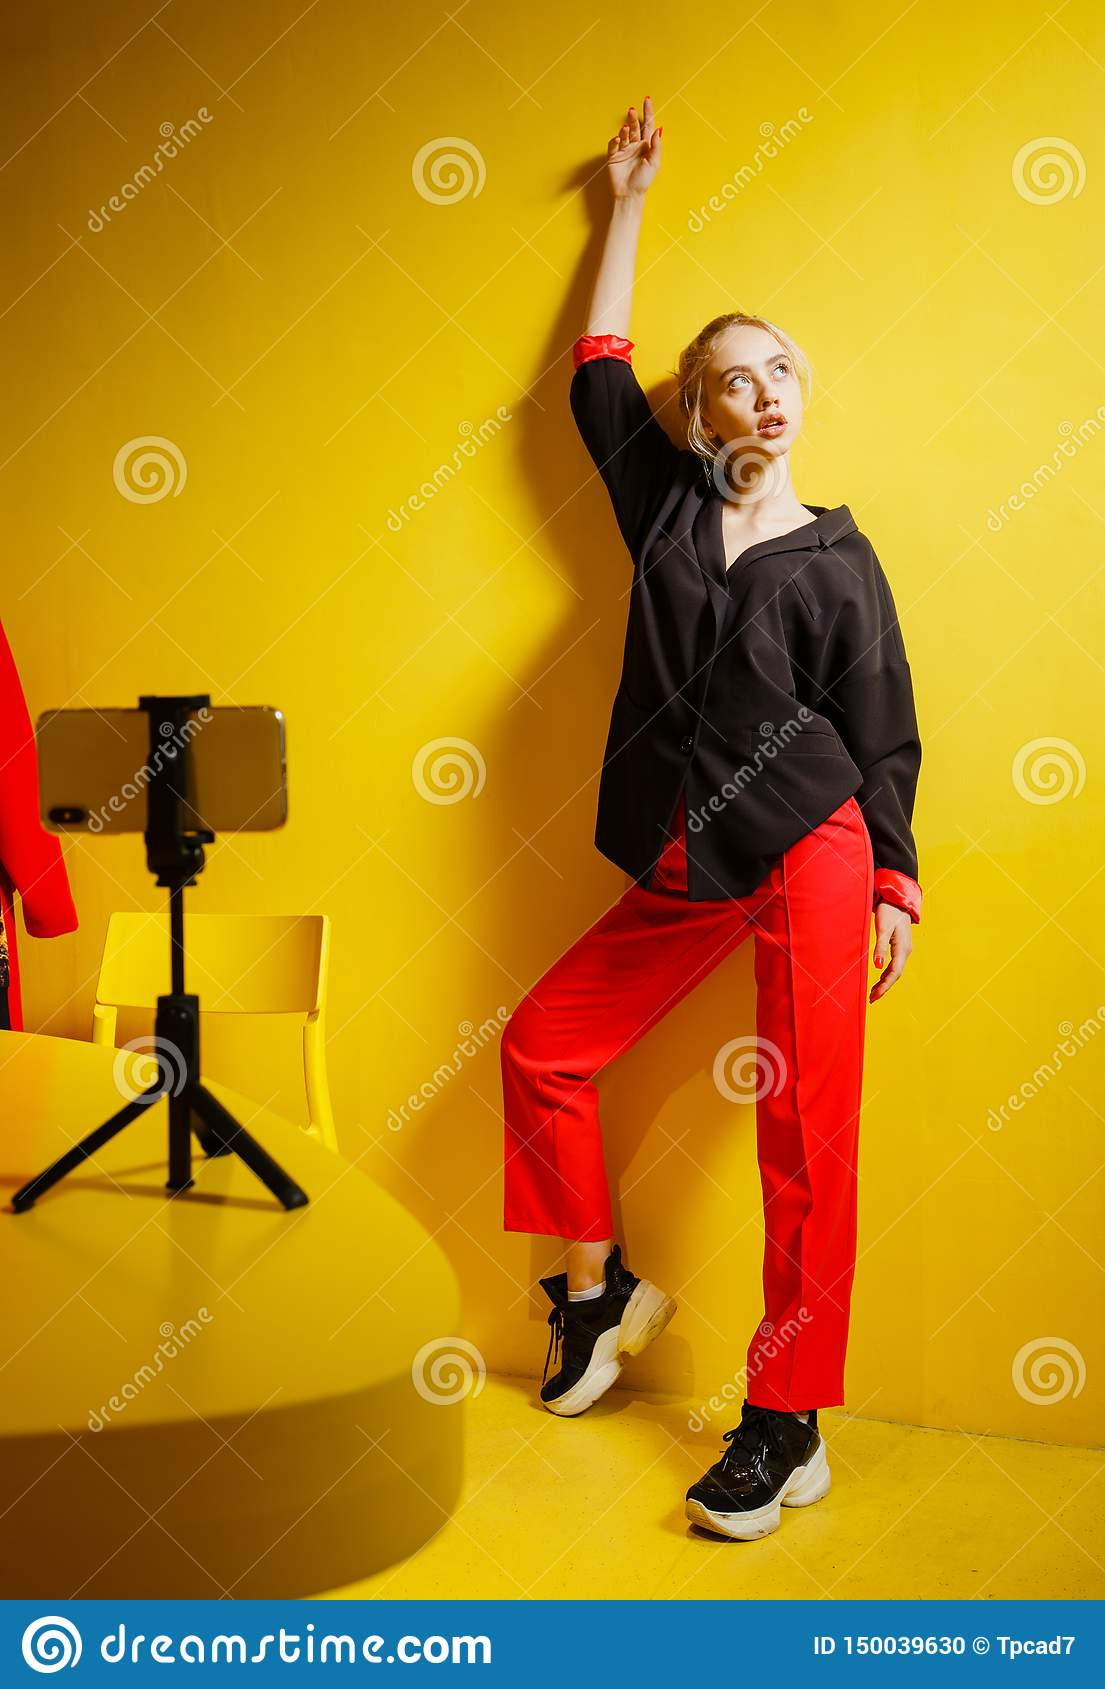 Young fashion girl blogger dressed in red trousers and black jacket takes a selfie on the smartphone standing on a stand